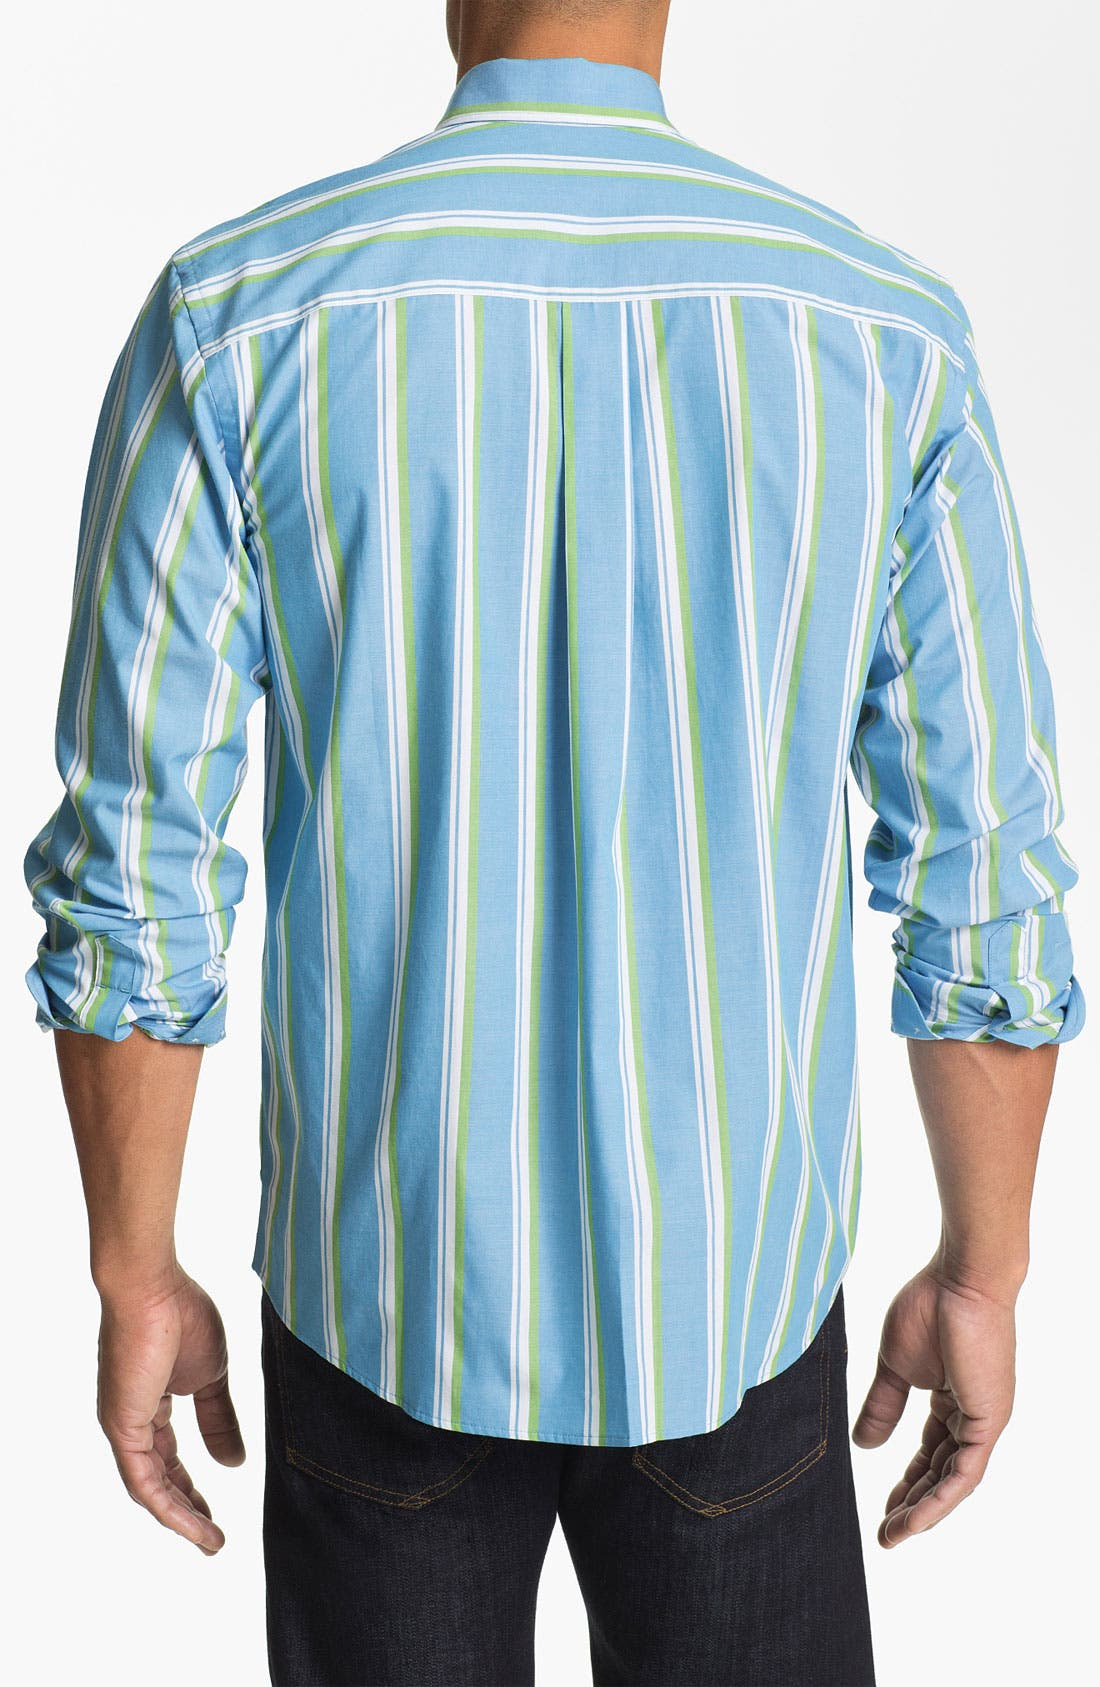 Alternate Image 2  - Cutter & Buck 'Whitmire Stripe' Regular Fit Sport Shirt (Big & Tall)